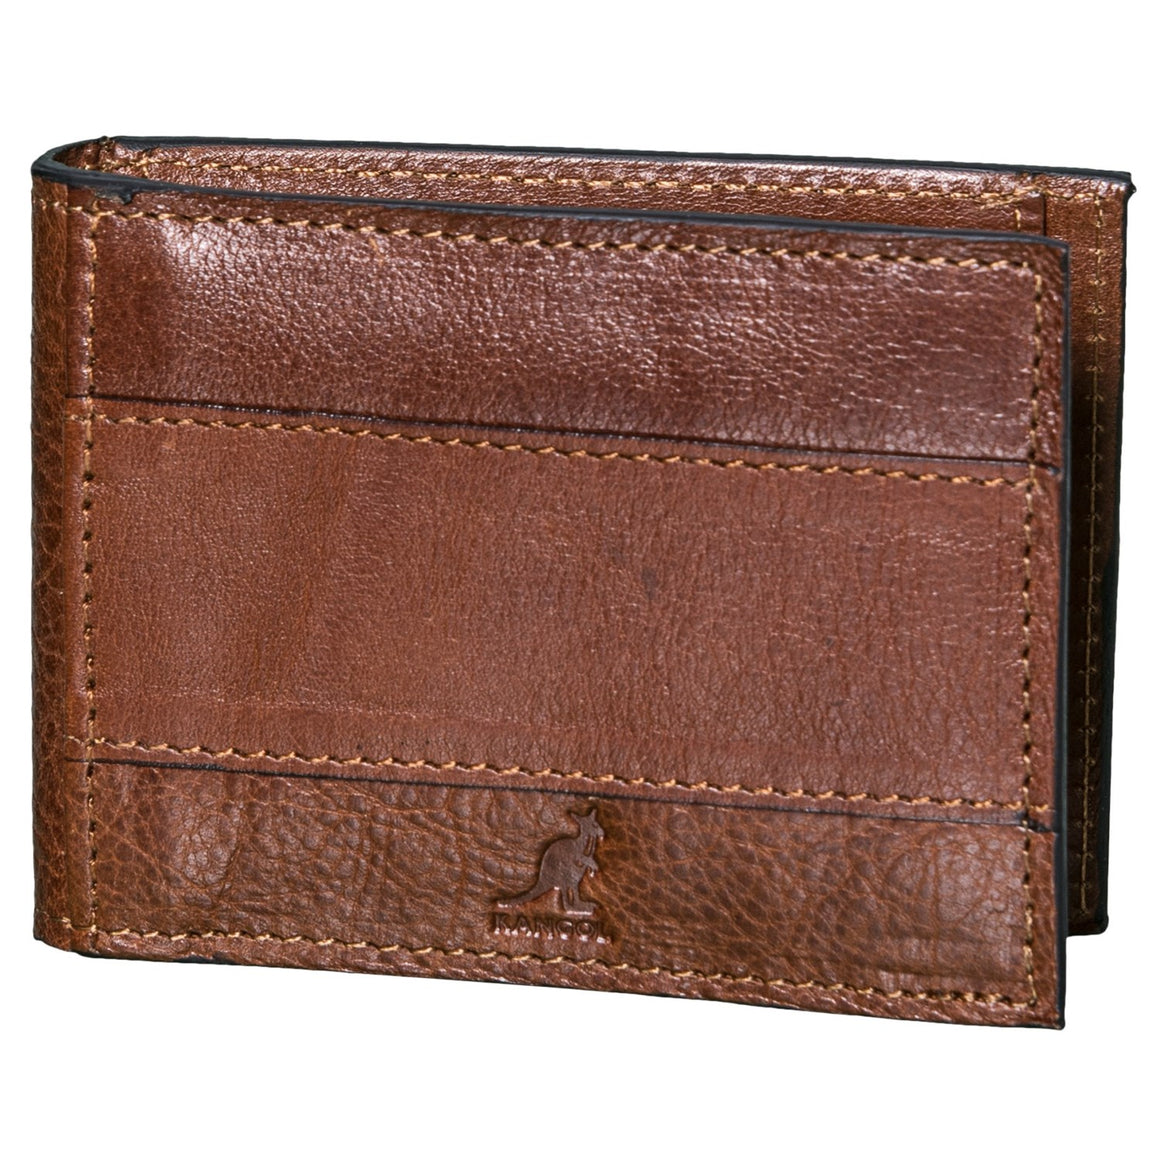 Kangol Britain Leather Mitch Bifold Money Clip Wallet Cognac